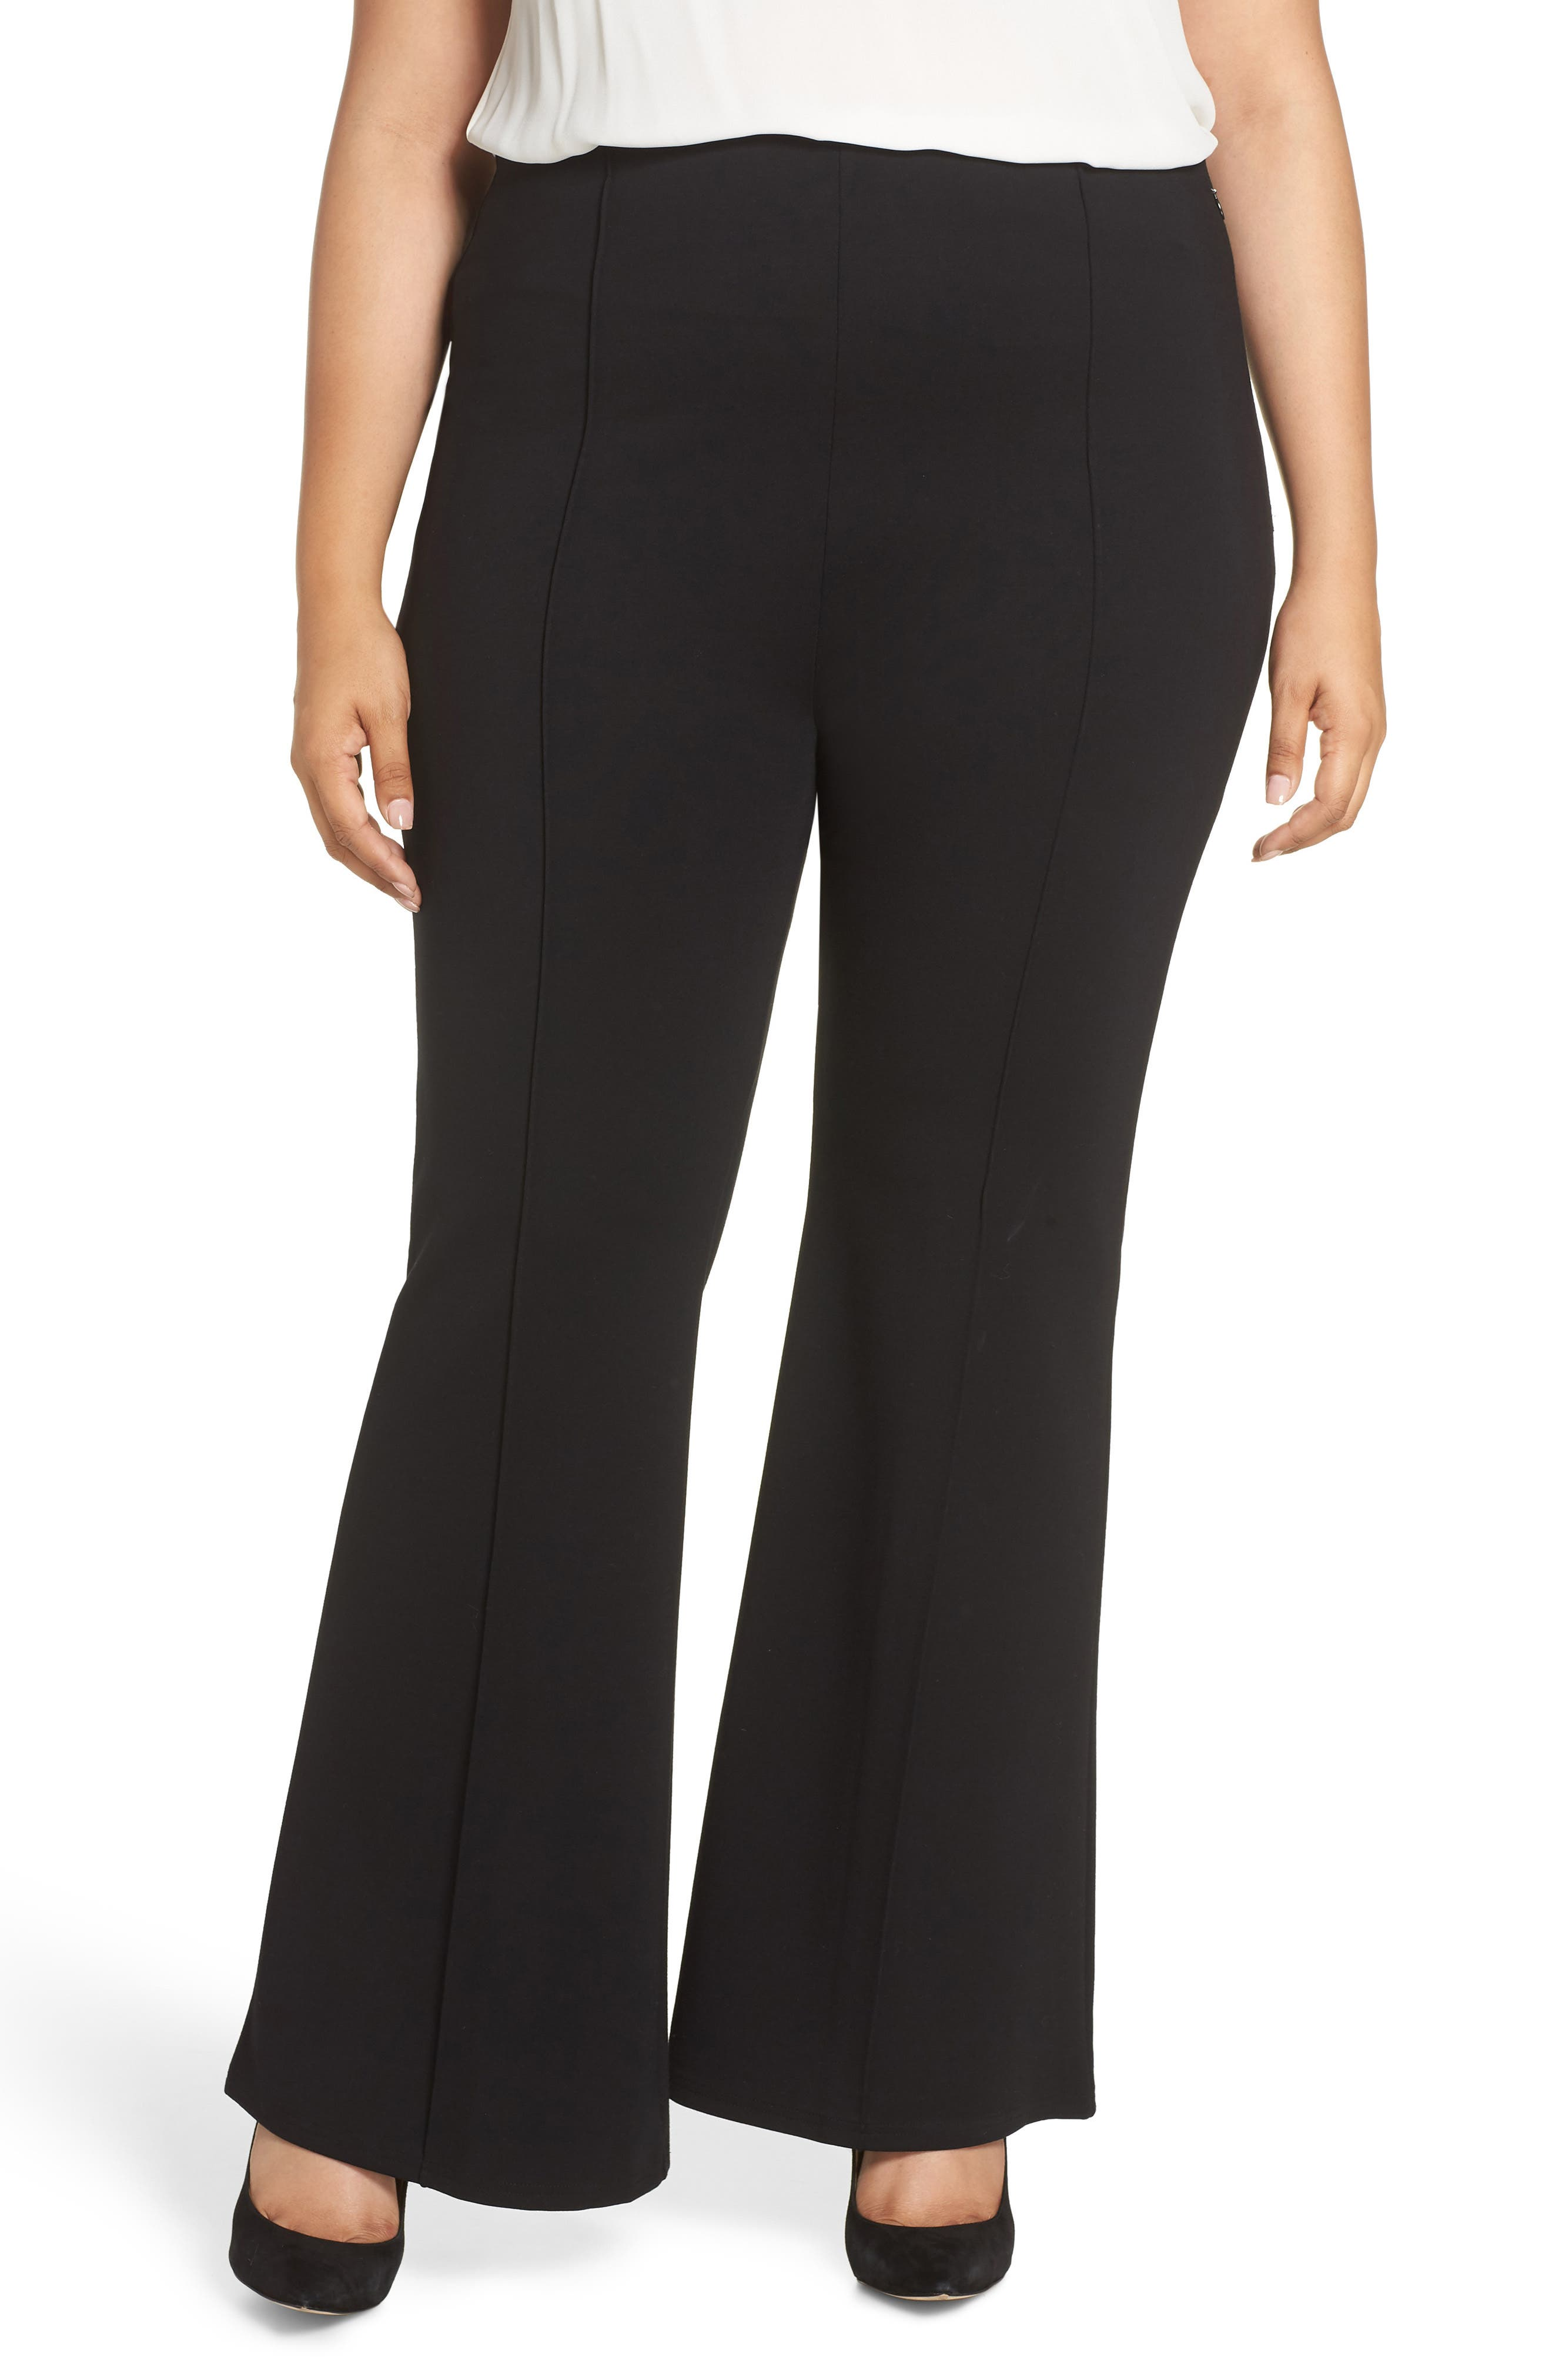 Plus Size Leith High Waist Flare Leg Pants, Black